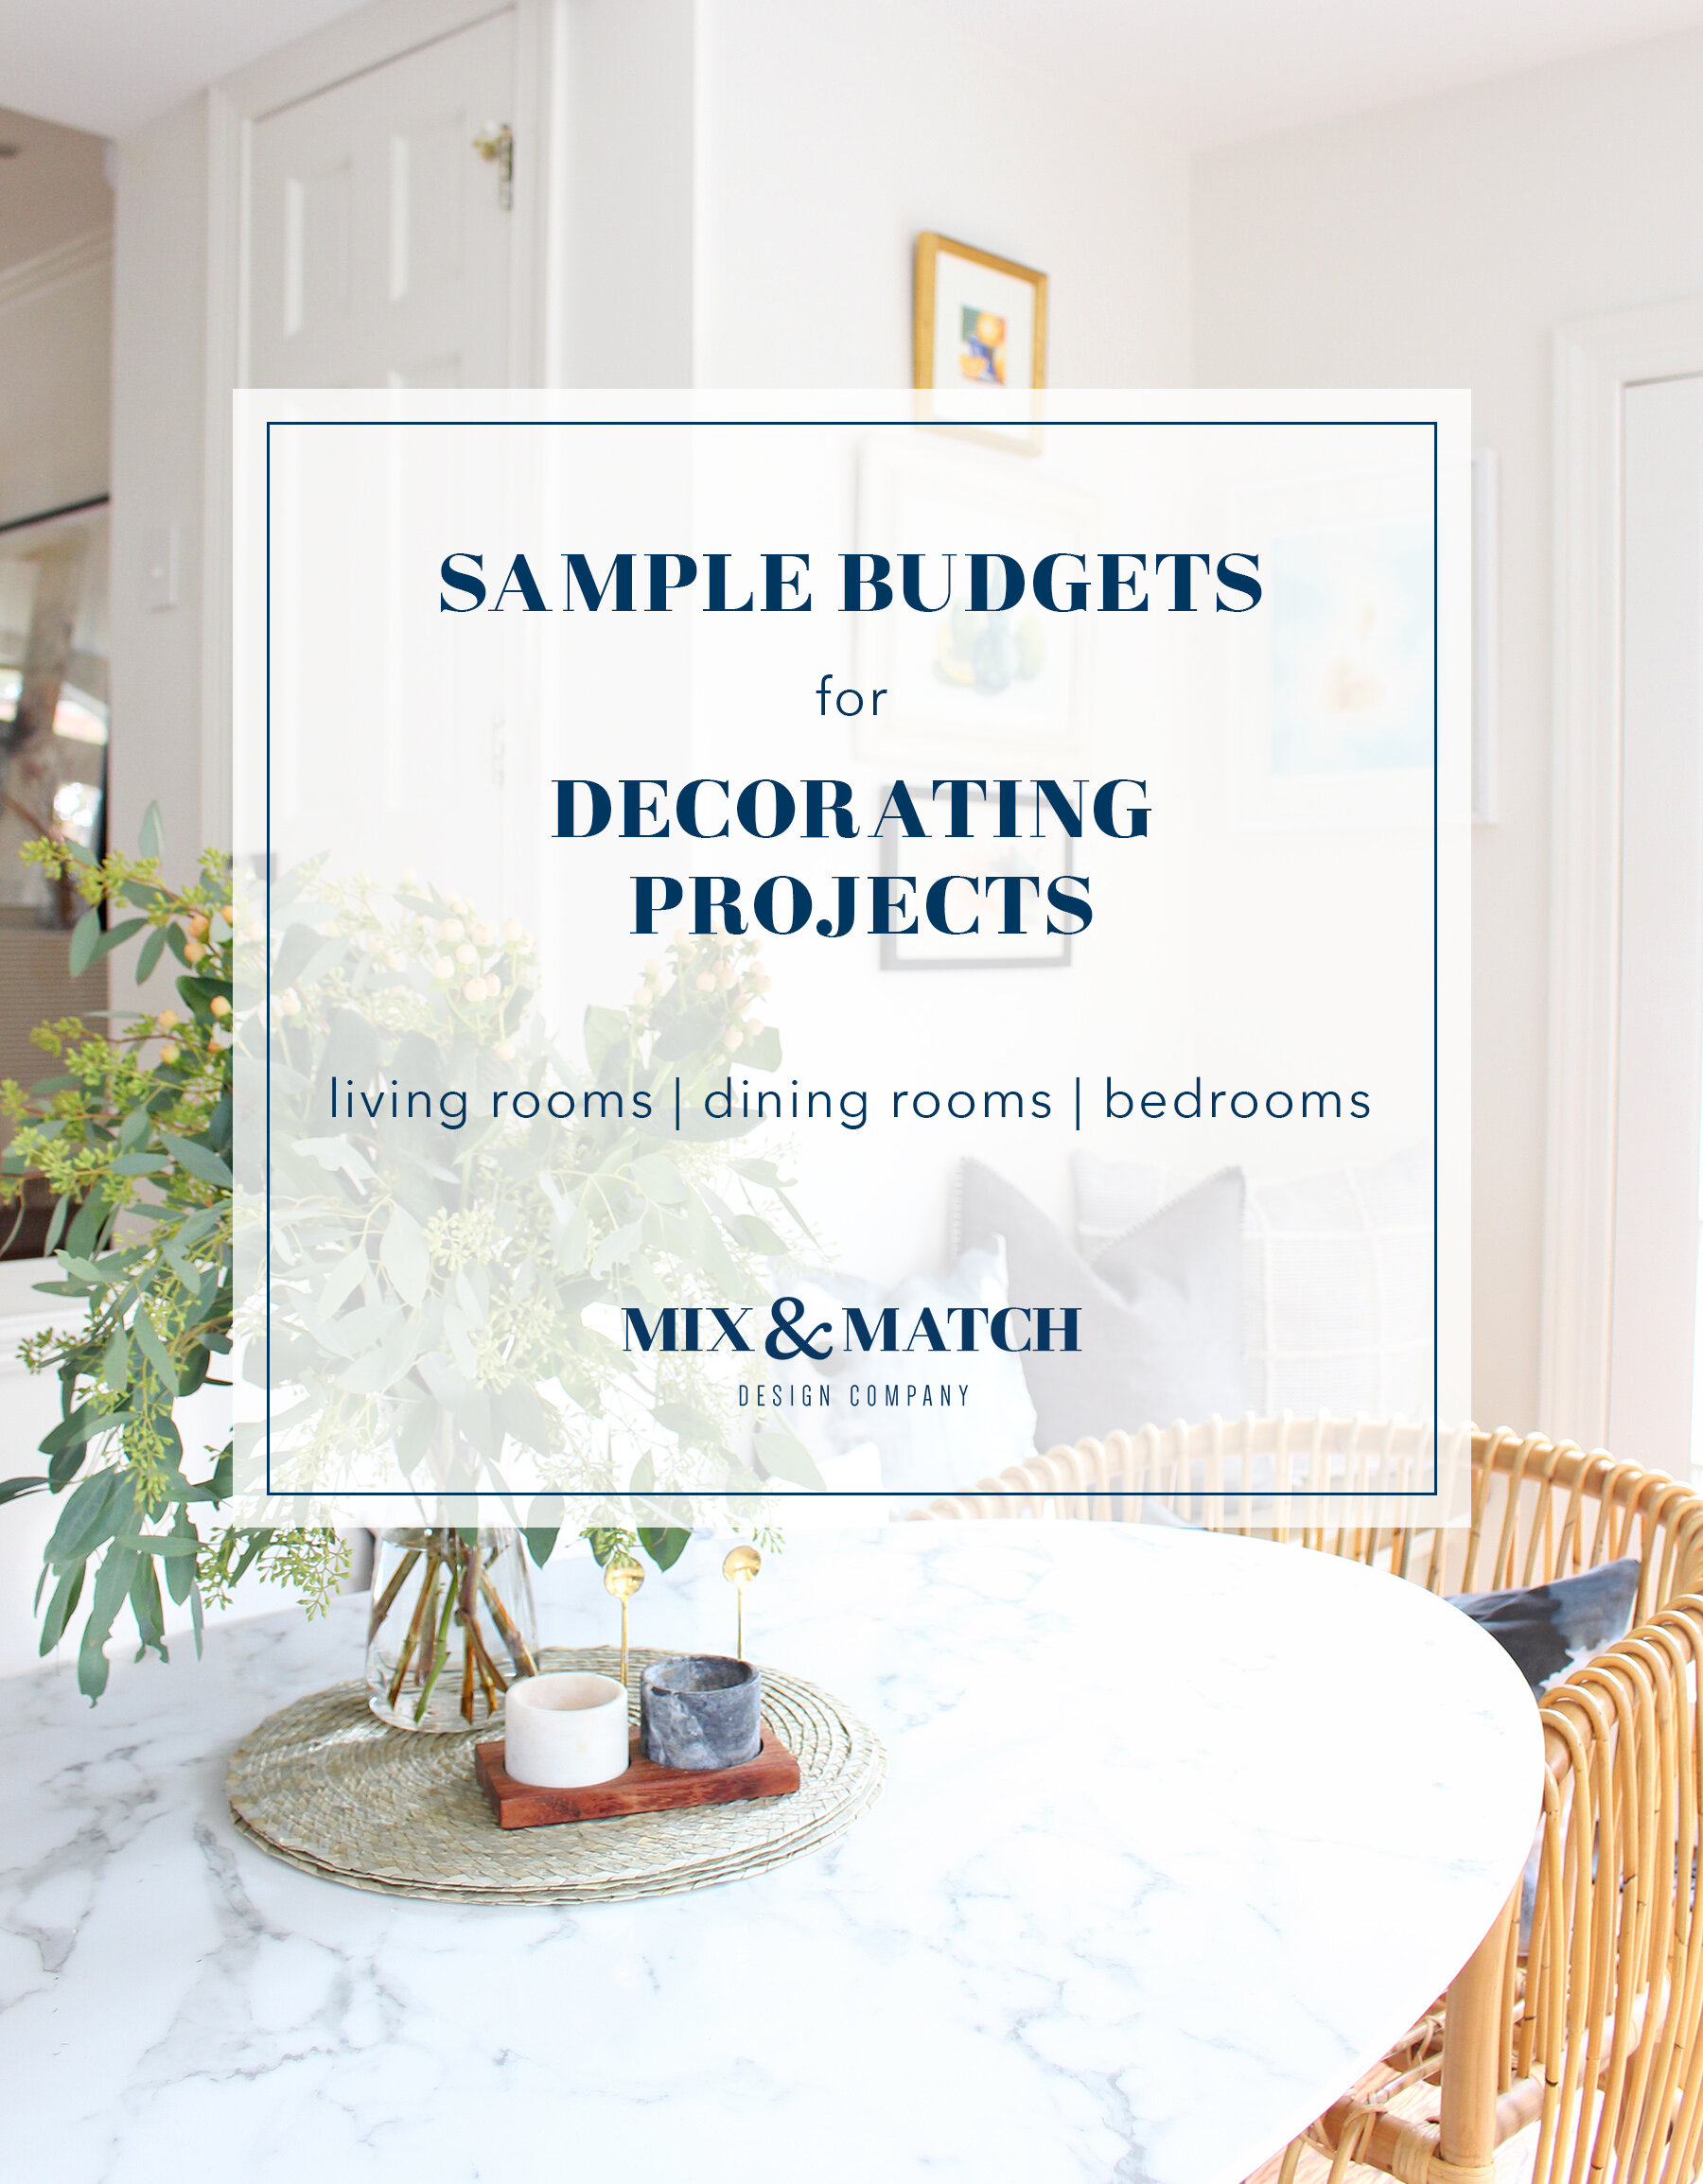 Though it might not be the most fun part, coming up with a budget for your decorating project is a key part of making it a successful one! Head to the blog to find sample budgets for living room, dining room, and bedroom projects at two different price points. I've also got a free budgeting spreadsheet for you to download for your next project!